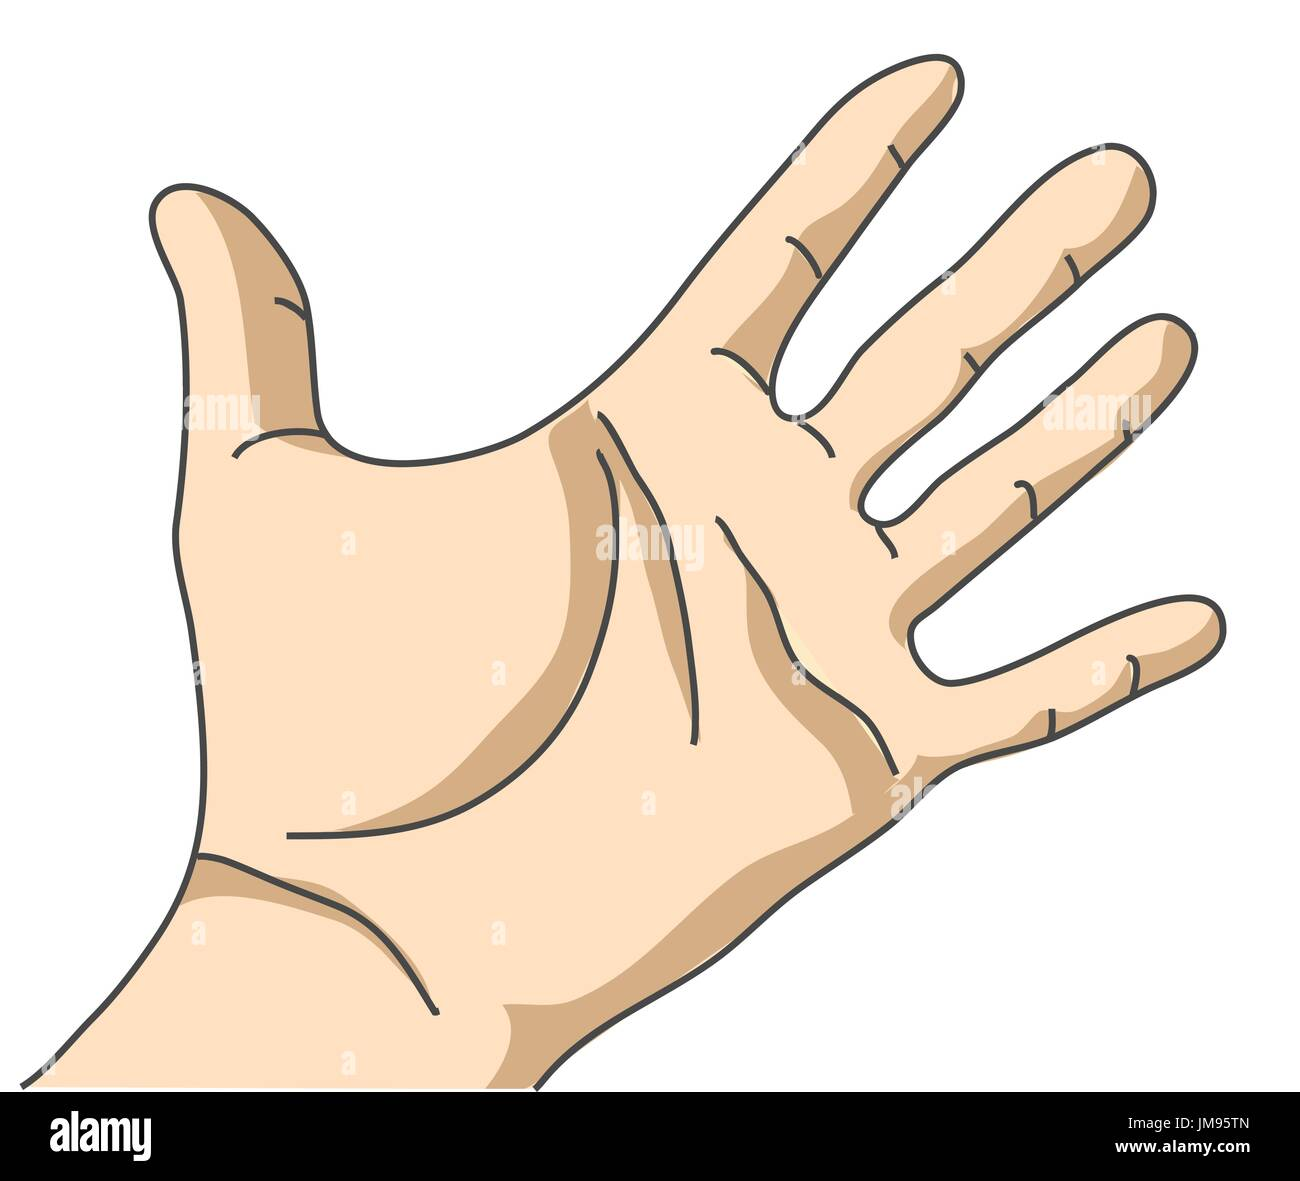 Palm hand isolate on white - Stock Vector